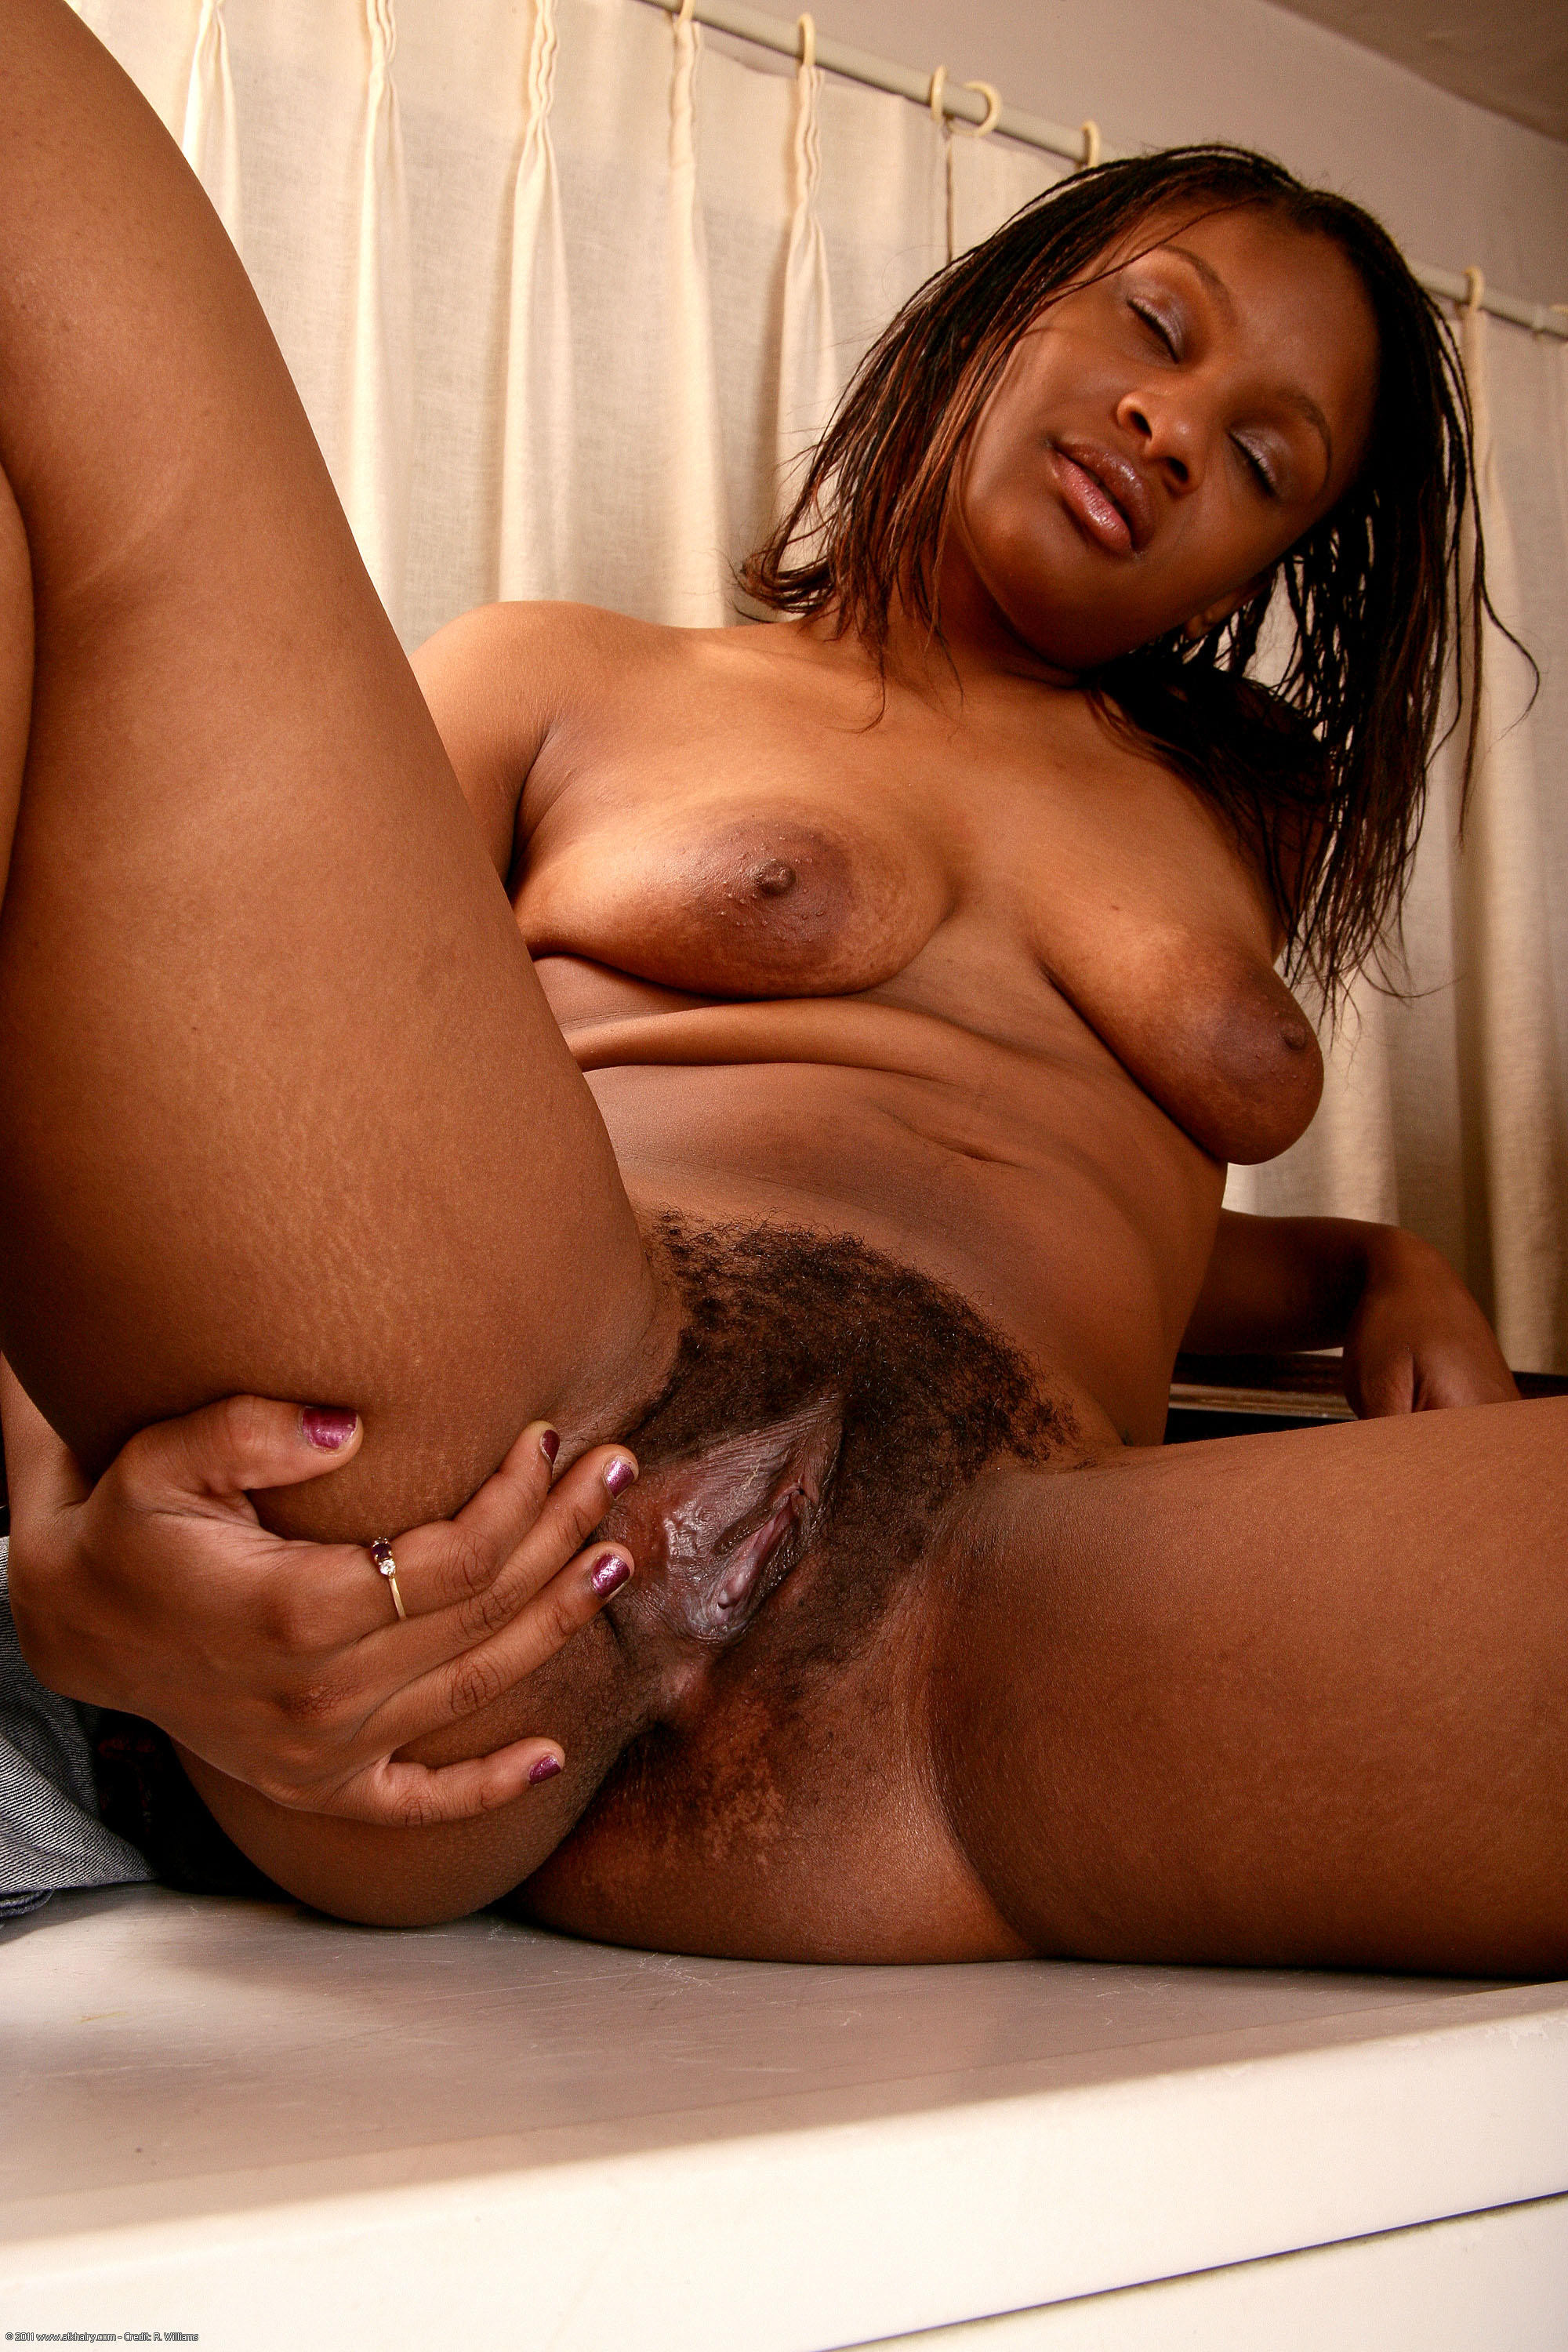 Ebony granny porn sites